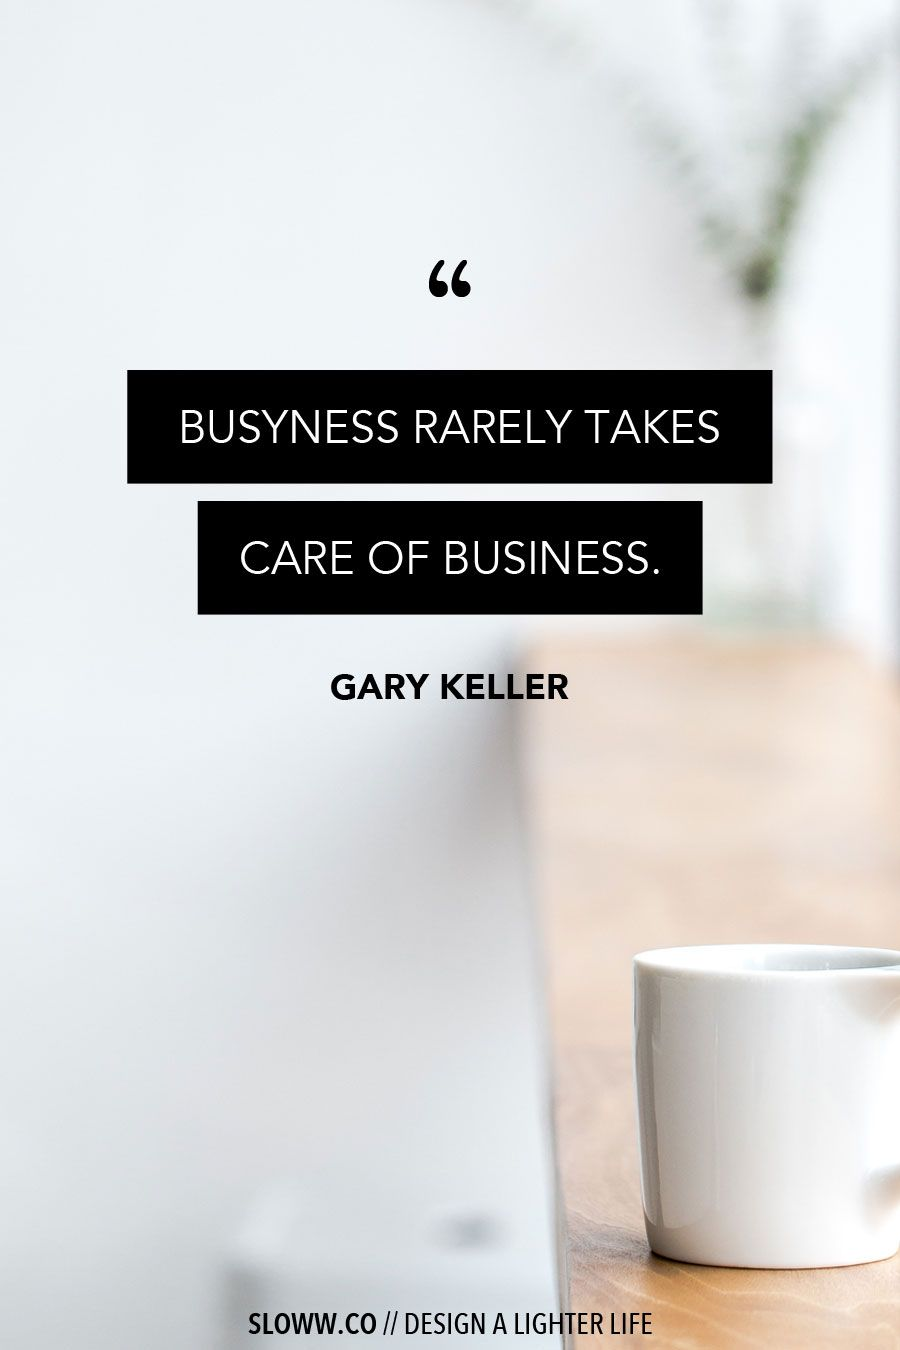 Busyness Rarely Takes Care Of Business Gary Keller Slow Living Simple Living Minimalism Purpose Lifepu Simplicity Quotes Light Of Life Slow Living